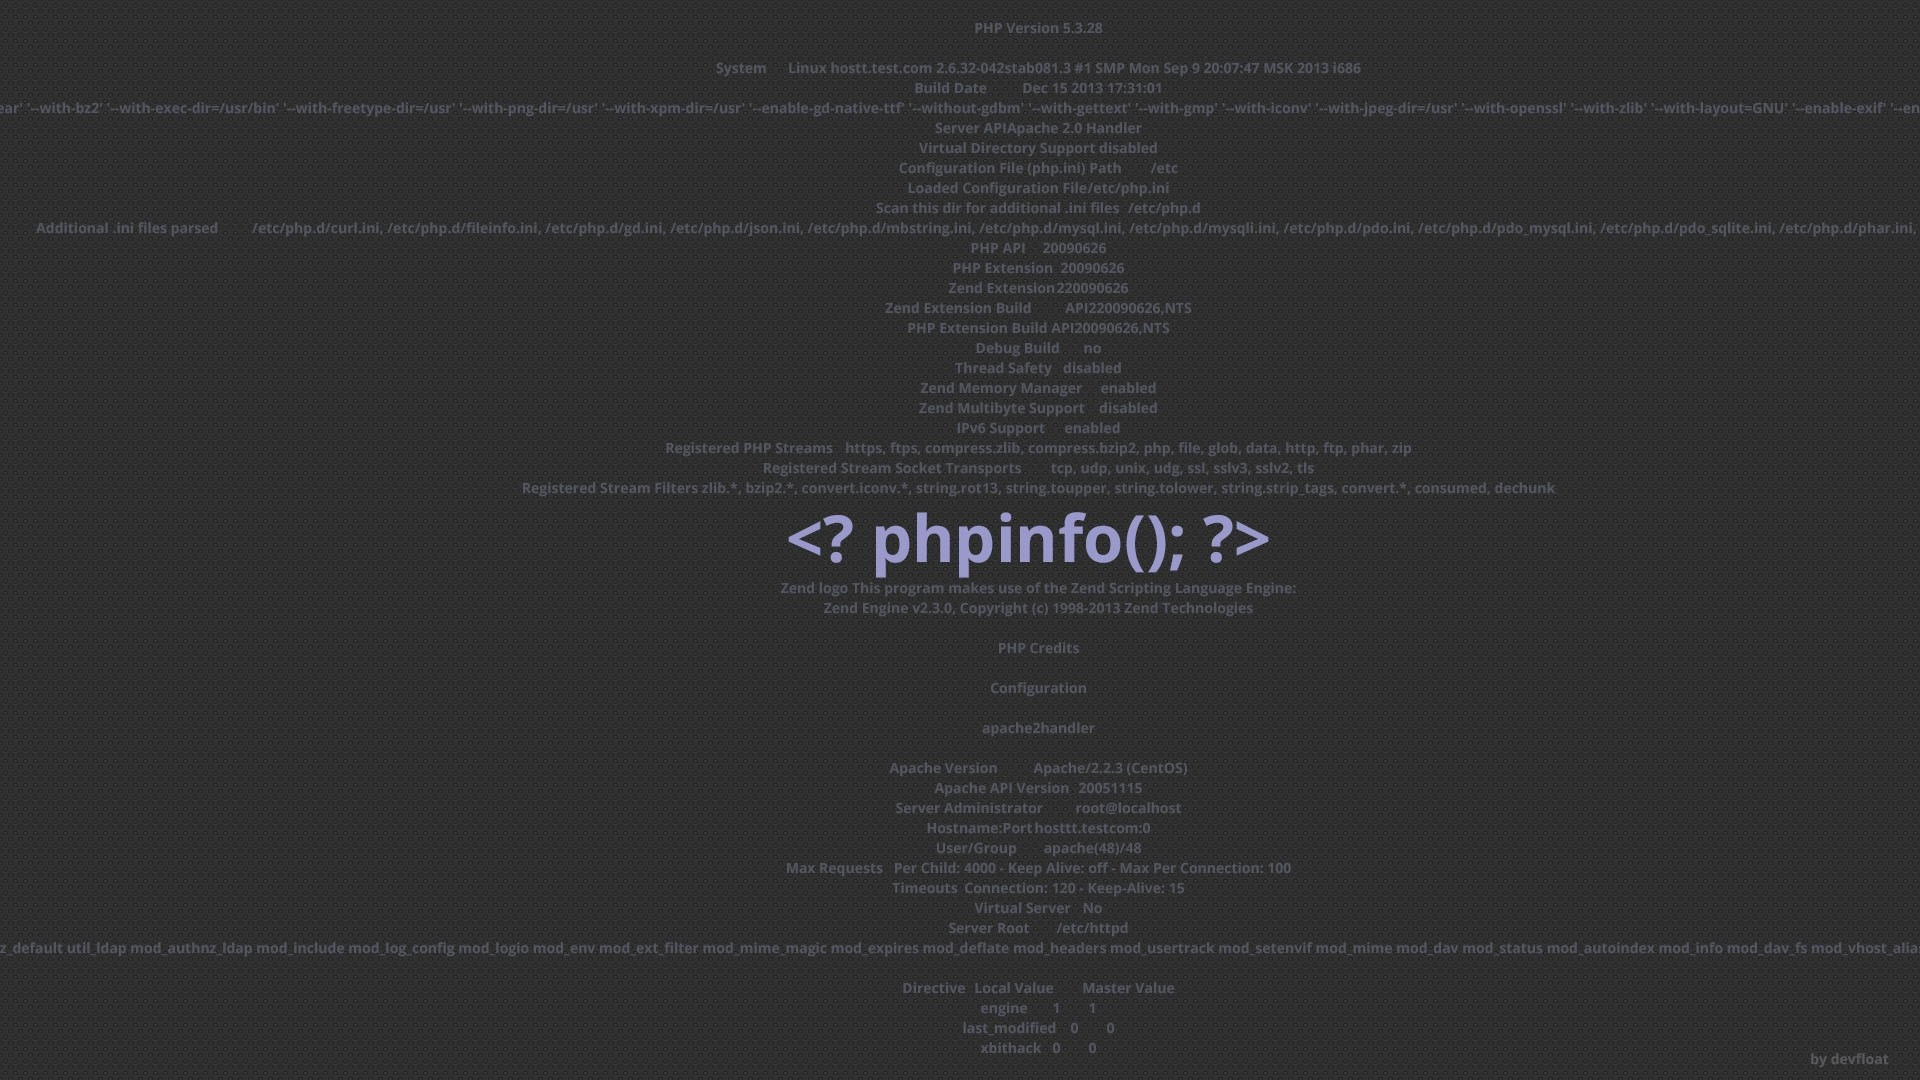 1920x1080 PHPinfo Developer Wallpaper